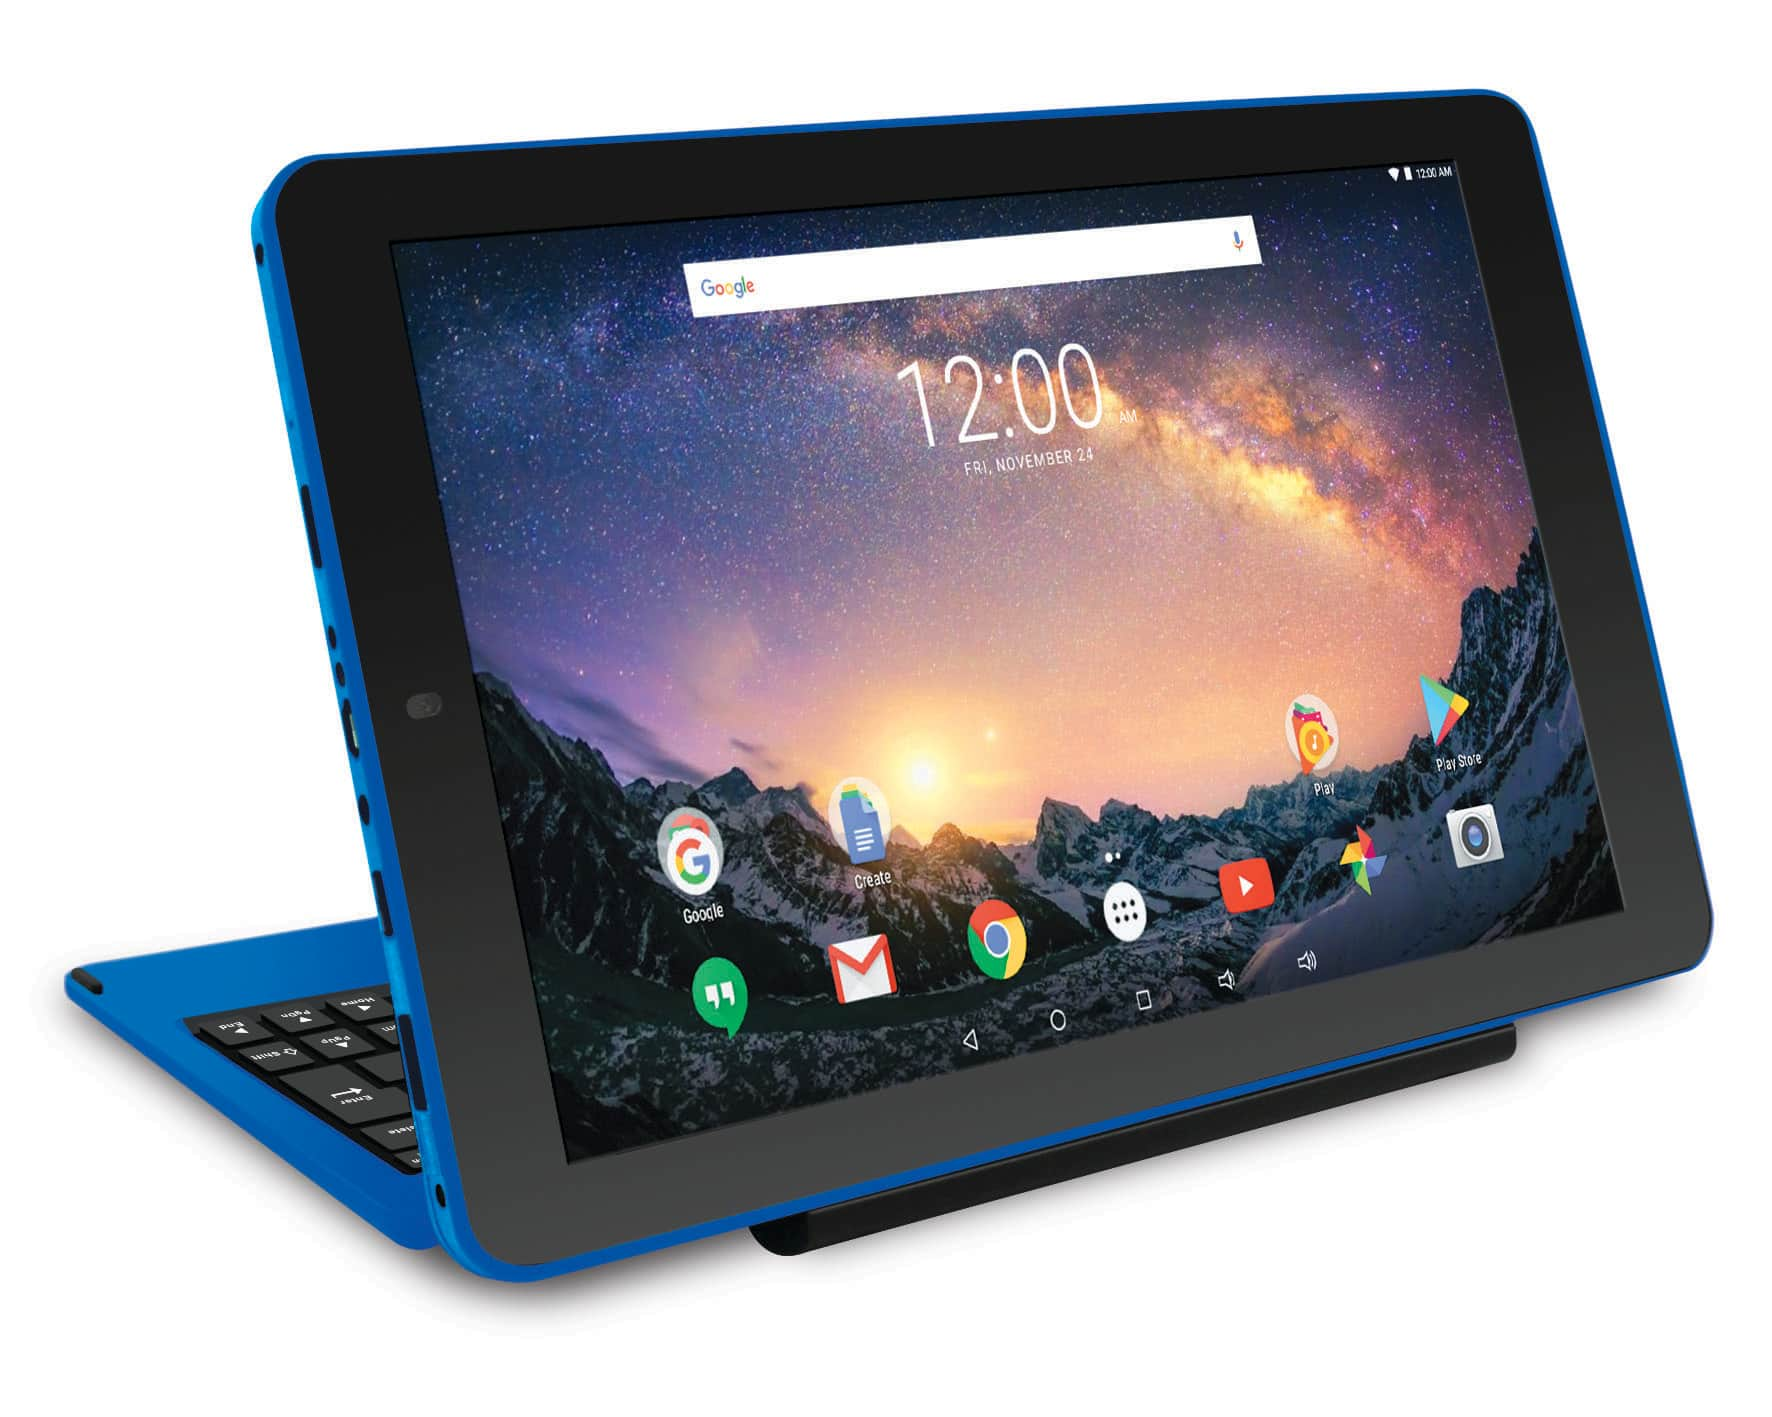 """RCA Galileo Pro 11.5"""" 32GB 2-in-1 Tablet with Keyboard Case Android OS - Blue - RCT6513W87DK $87.99"""